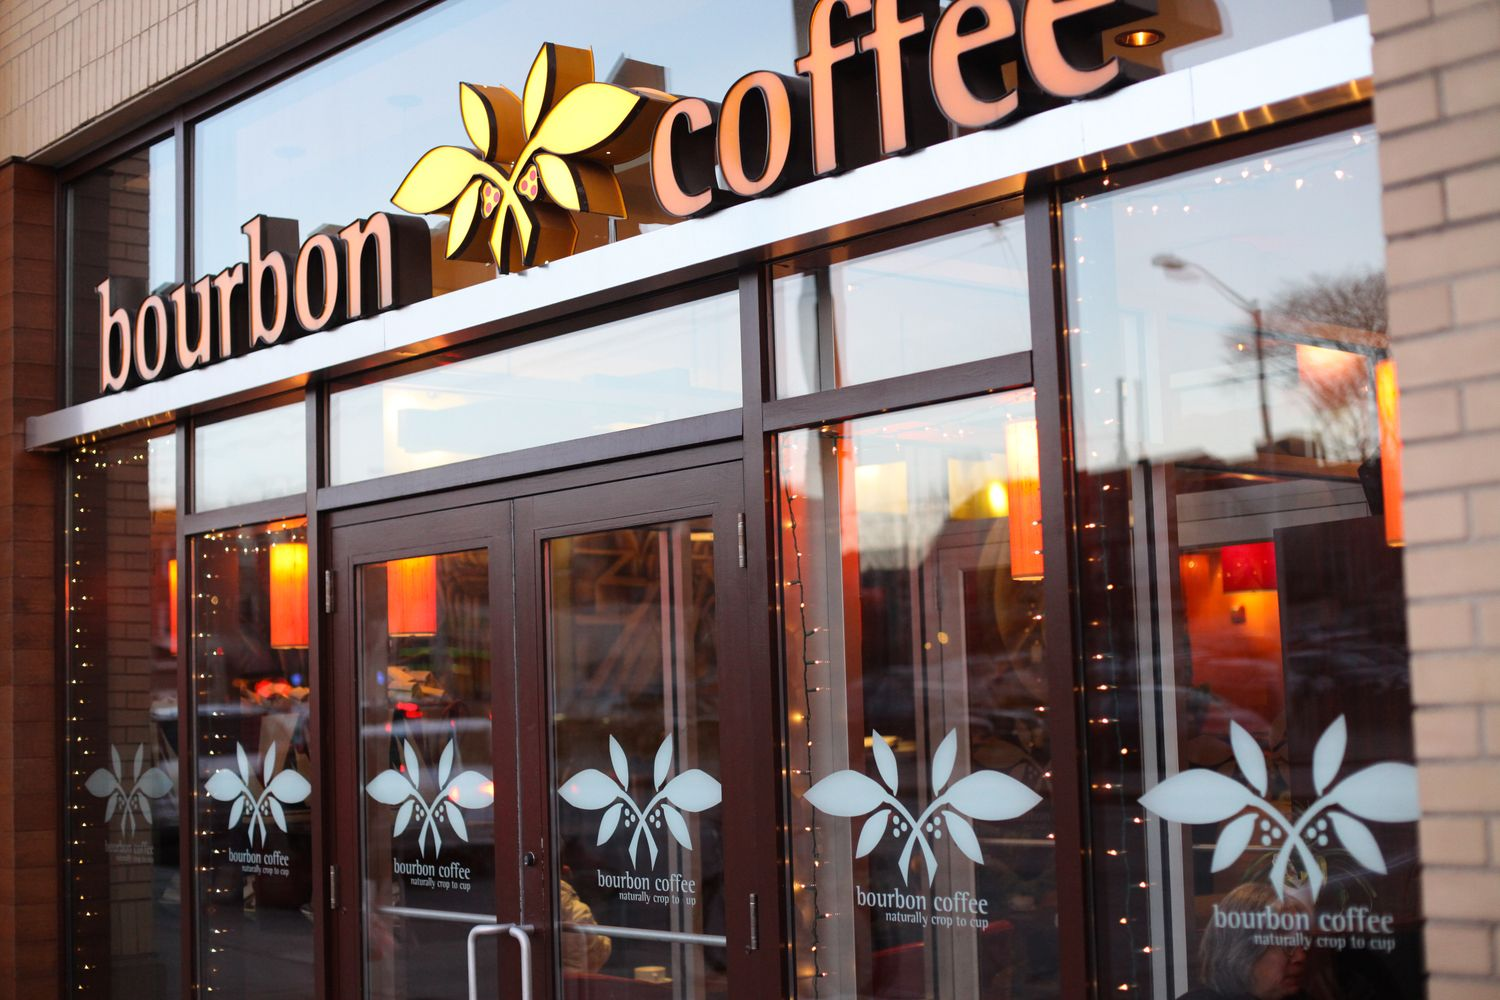 Our Cafes Bourbon, Coffee, Broadway shows